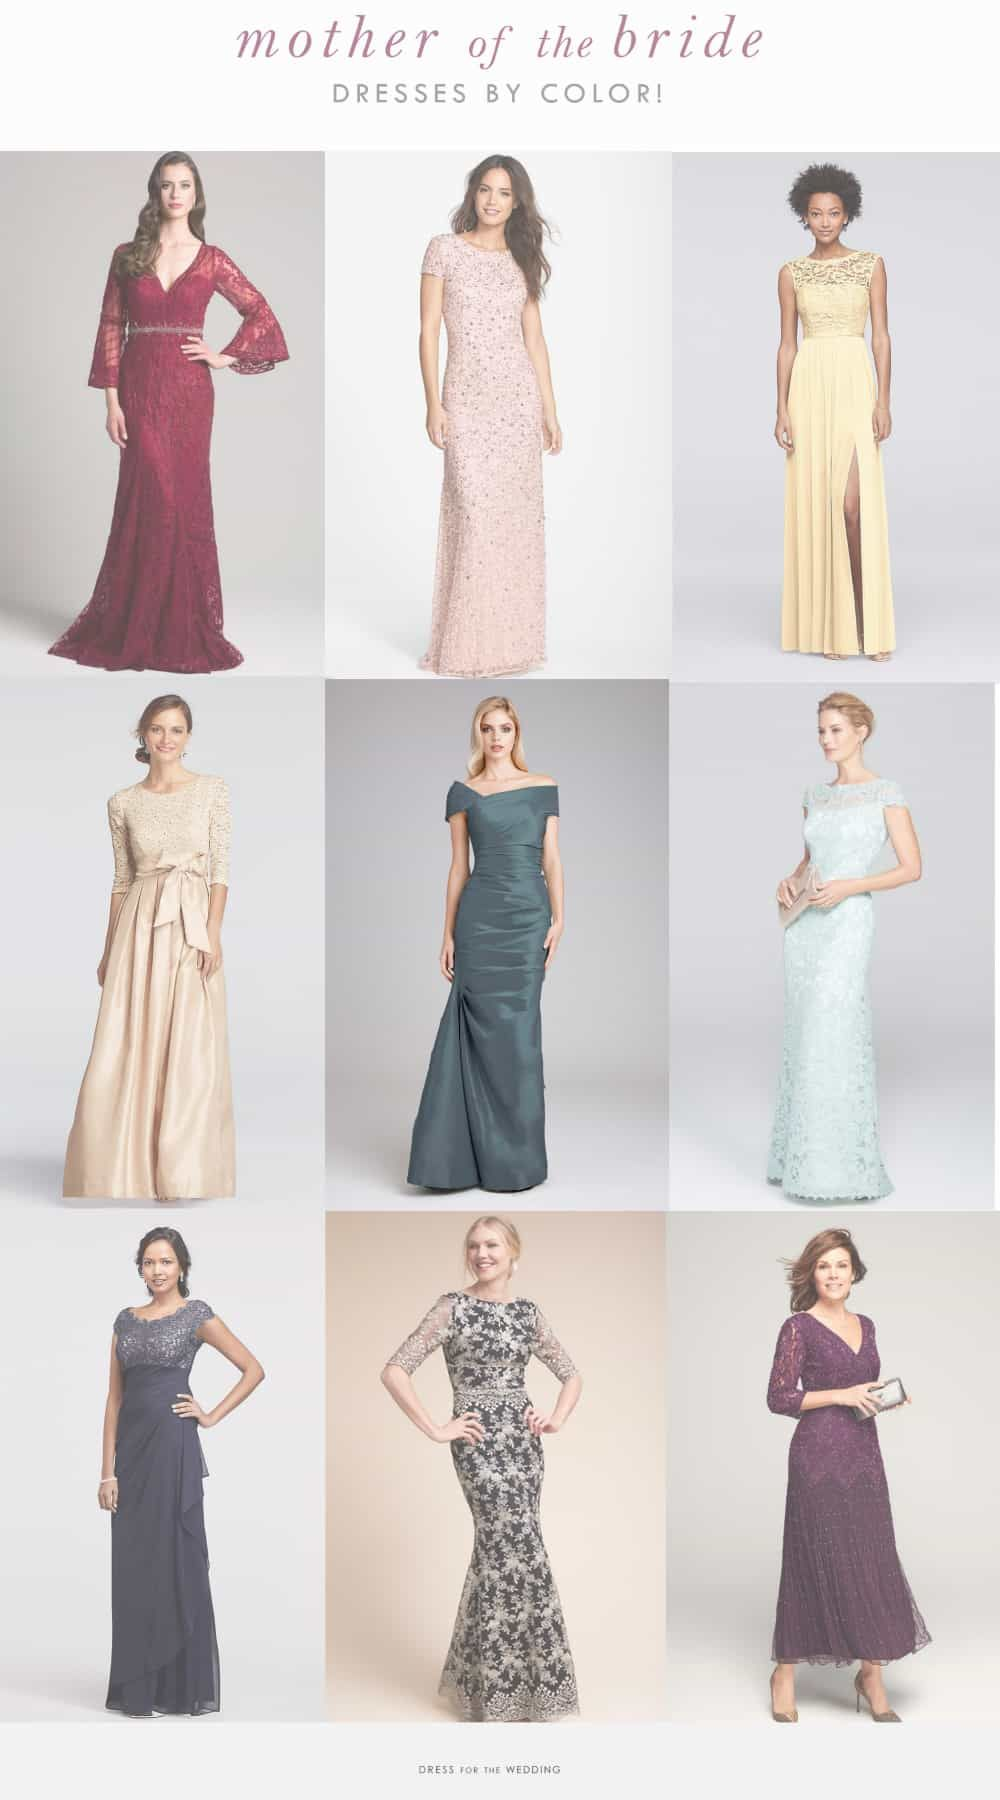 b469296e2a4 Find Mother-of-the-Bride Dresses by Color! Beautiful dresses for the   motherofthebride  motherofthegroom